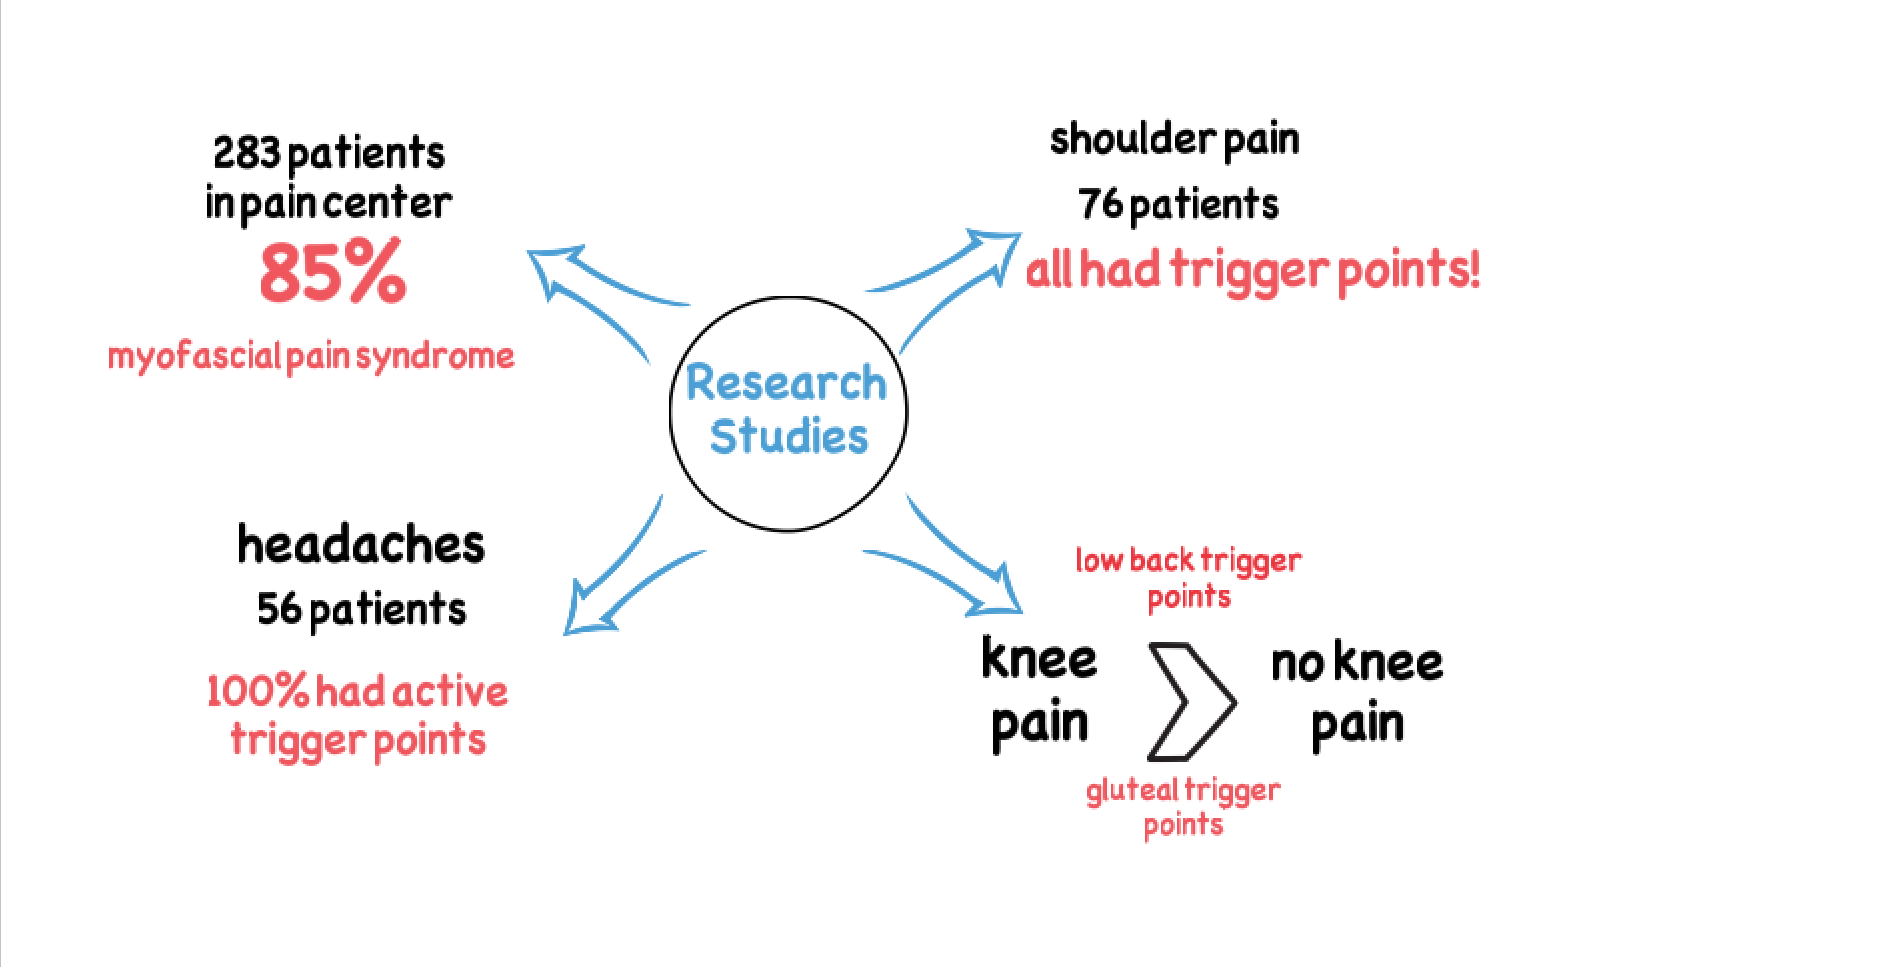 Mind map of key facts about muscle pain